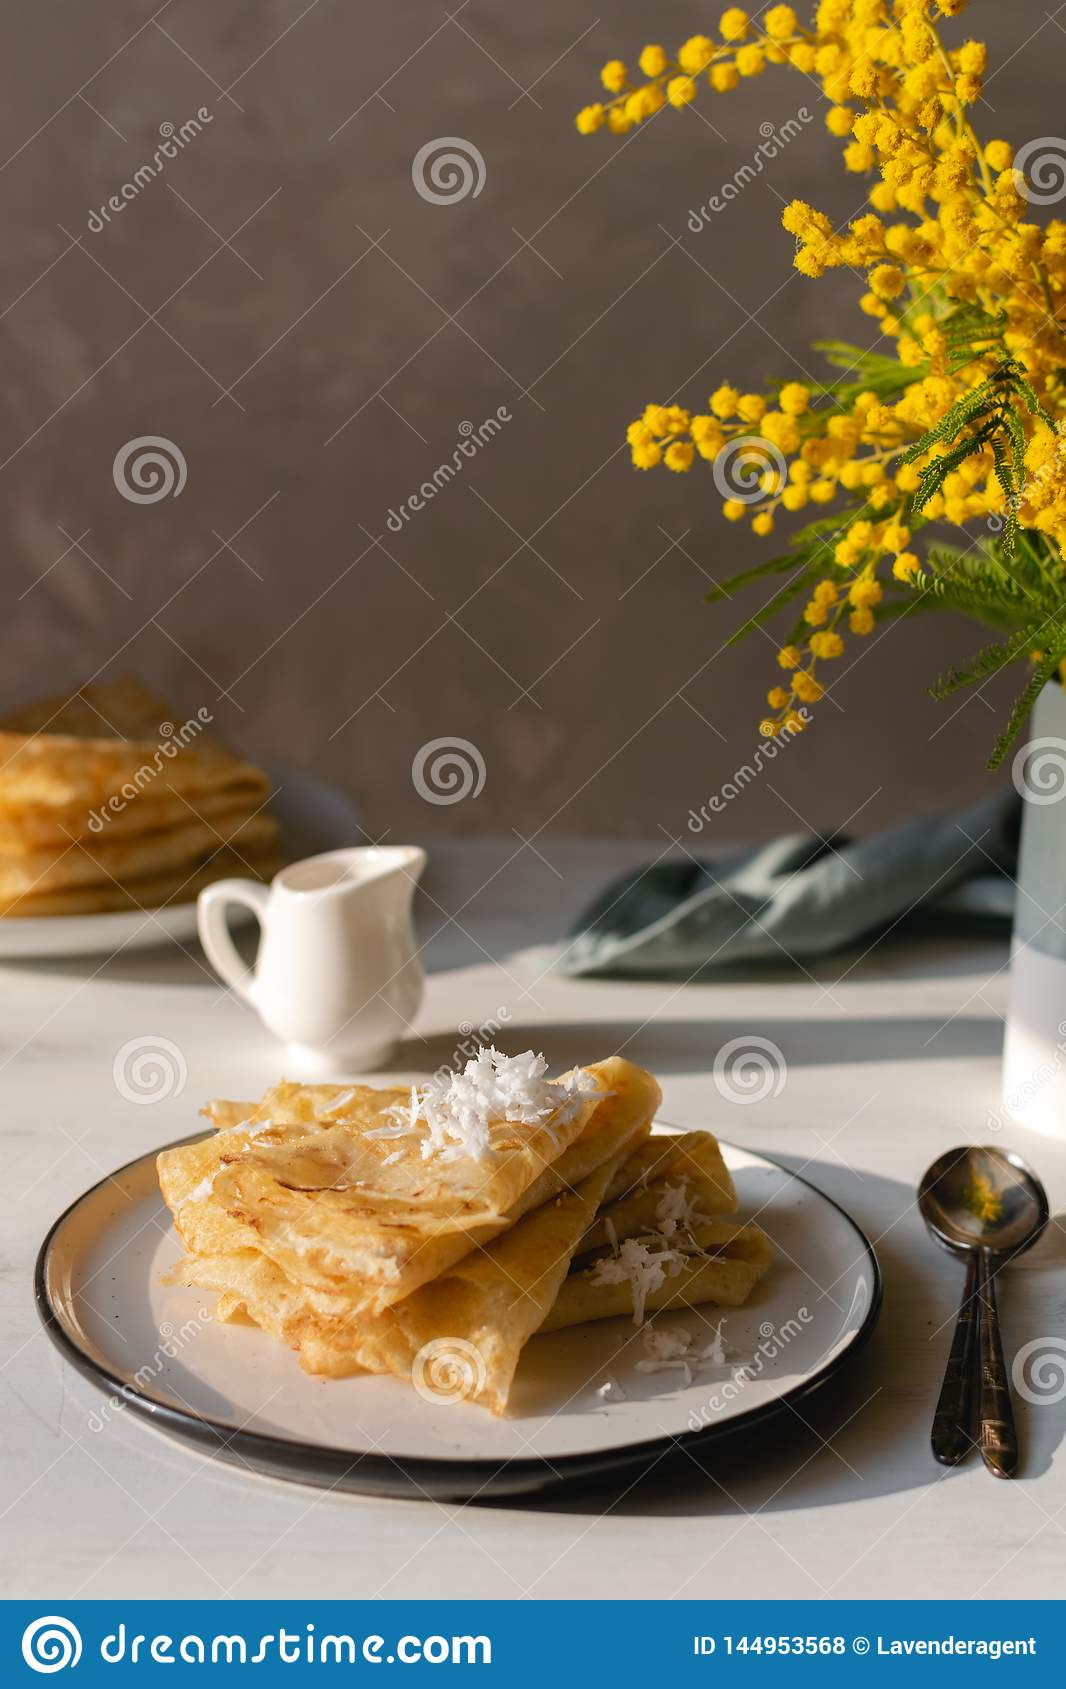 Morning, breakfast - traditional russian blini pancakes, french crepes whipped cream, mimosa flower